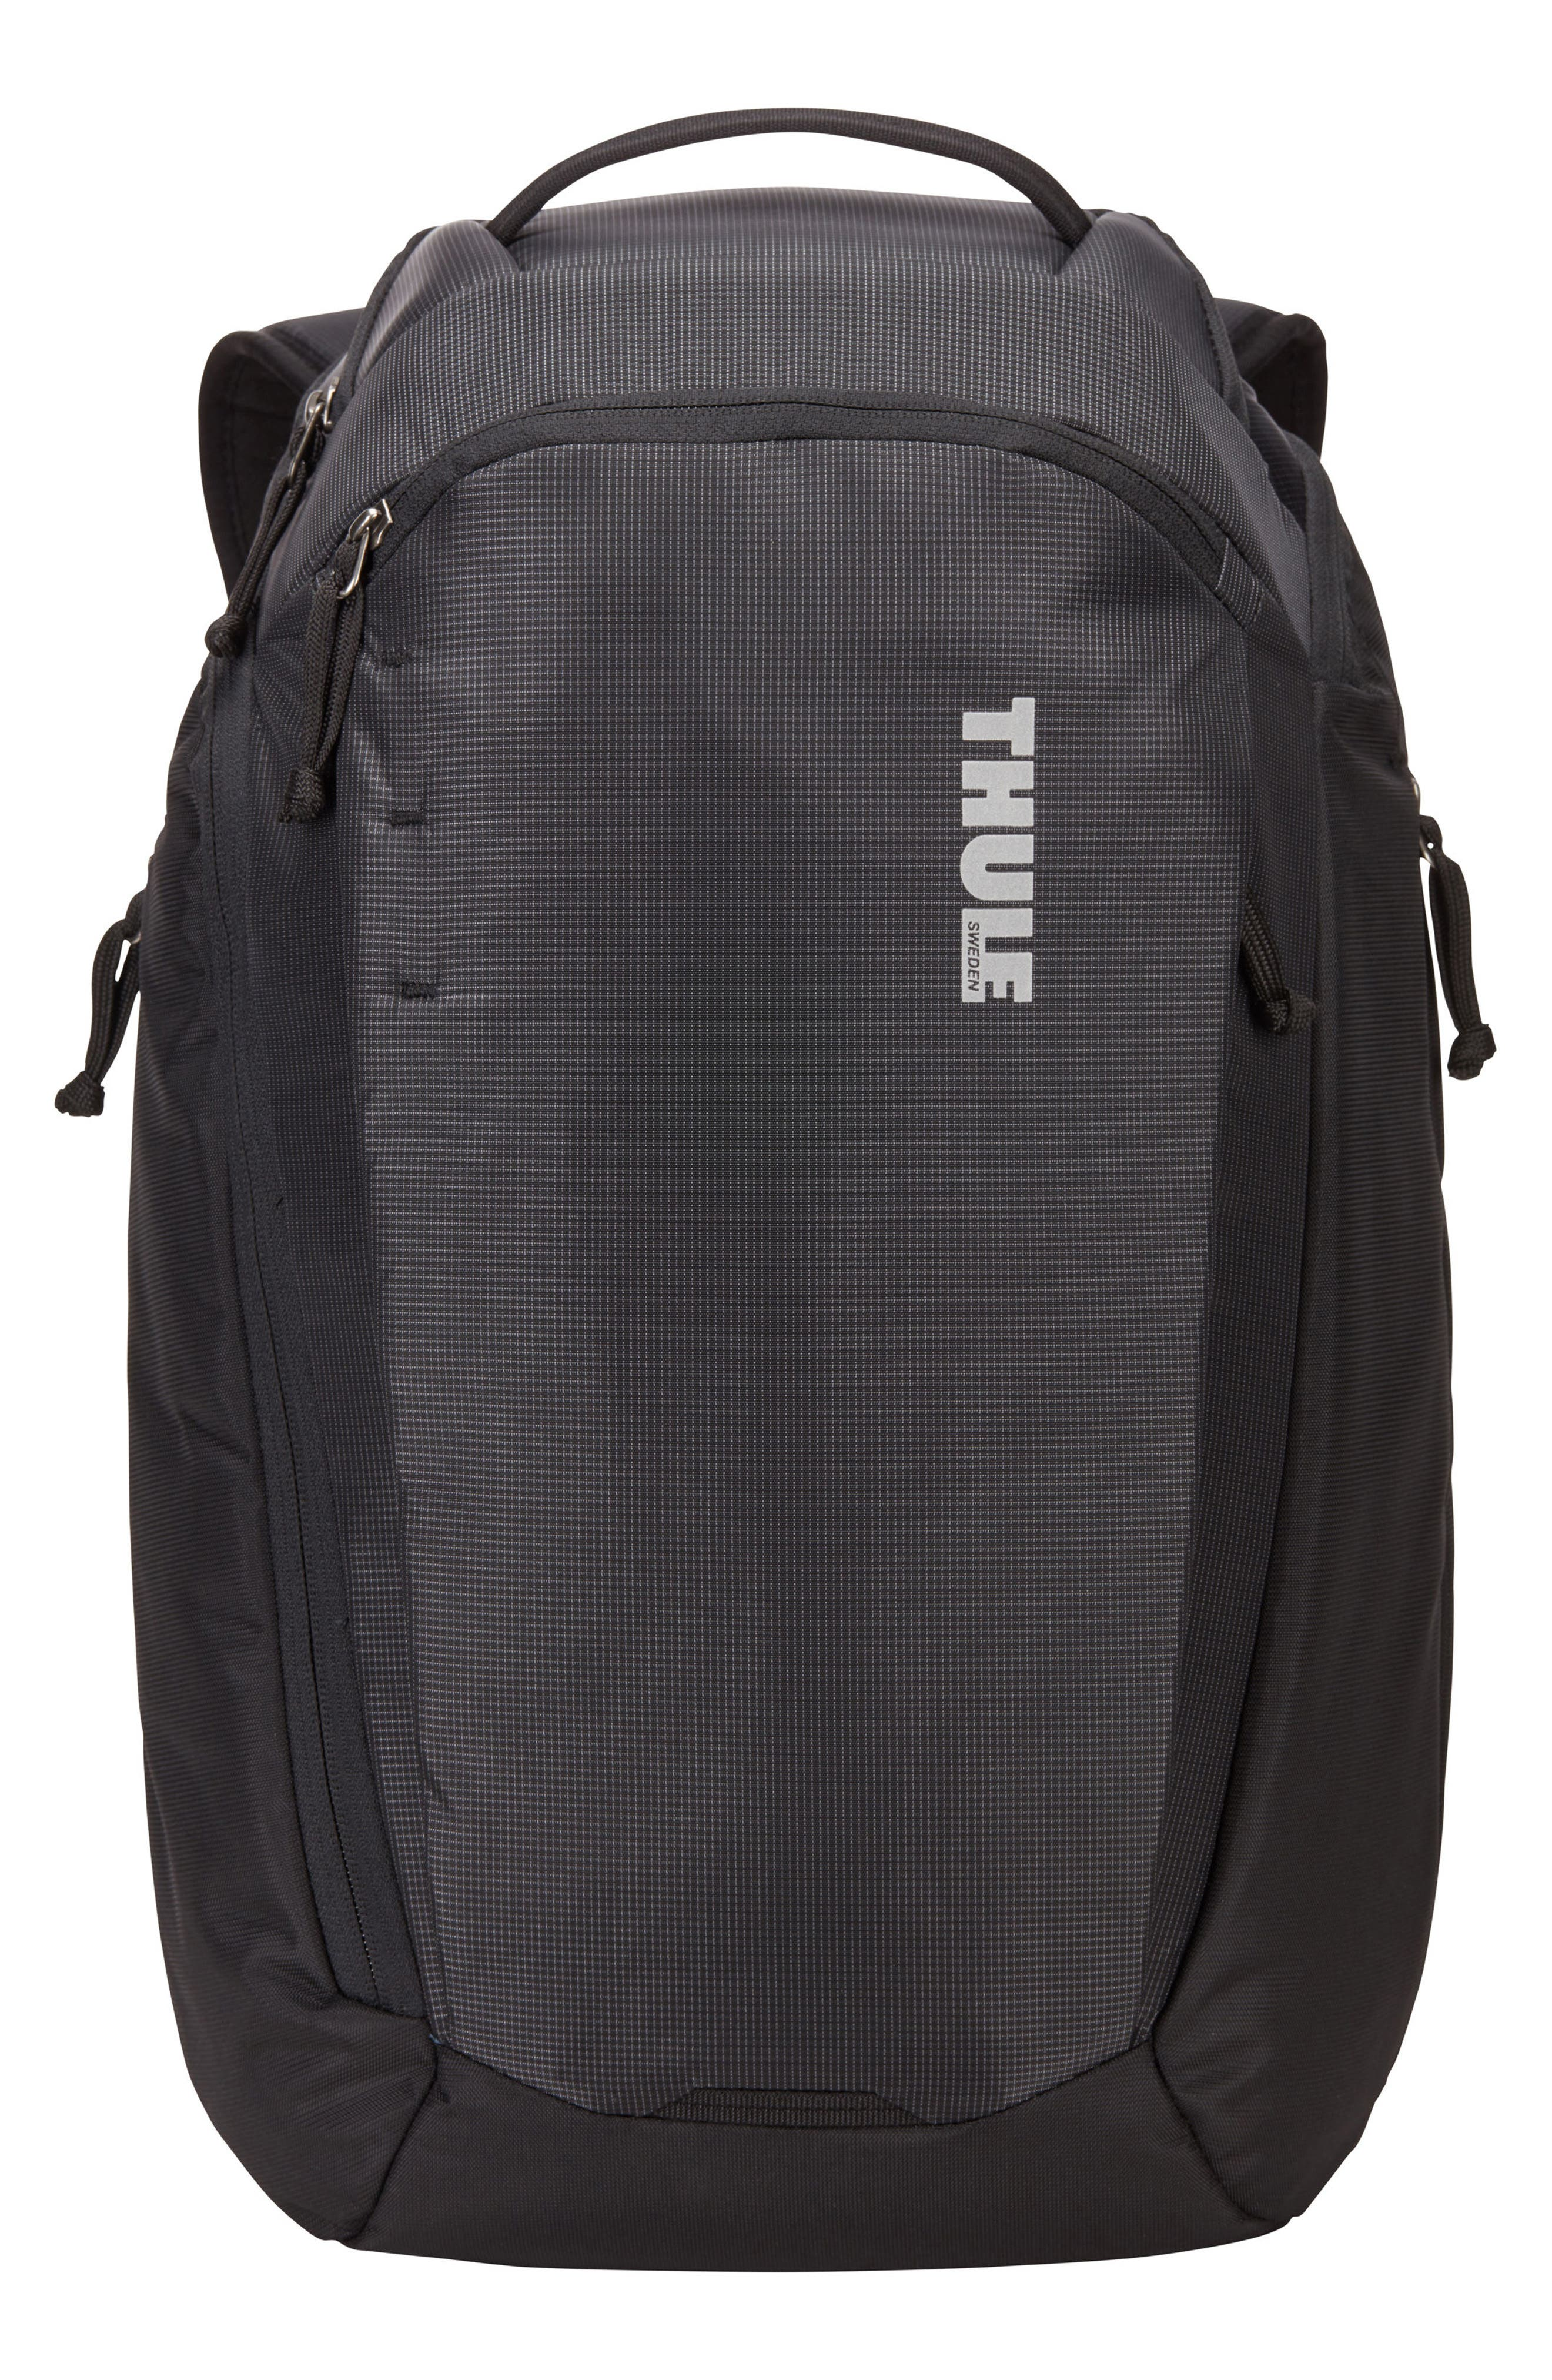 EnRoute Backpack,                         Main,                         color, BLACK